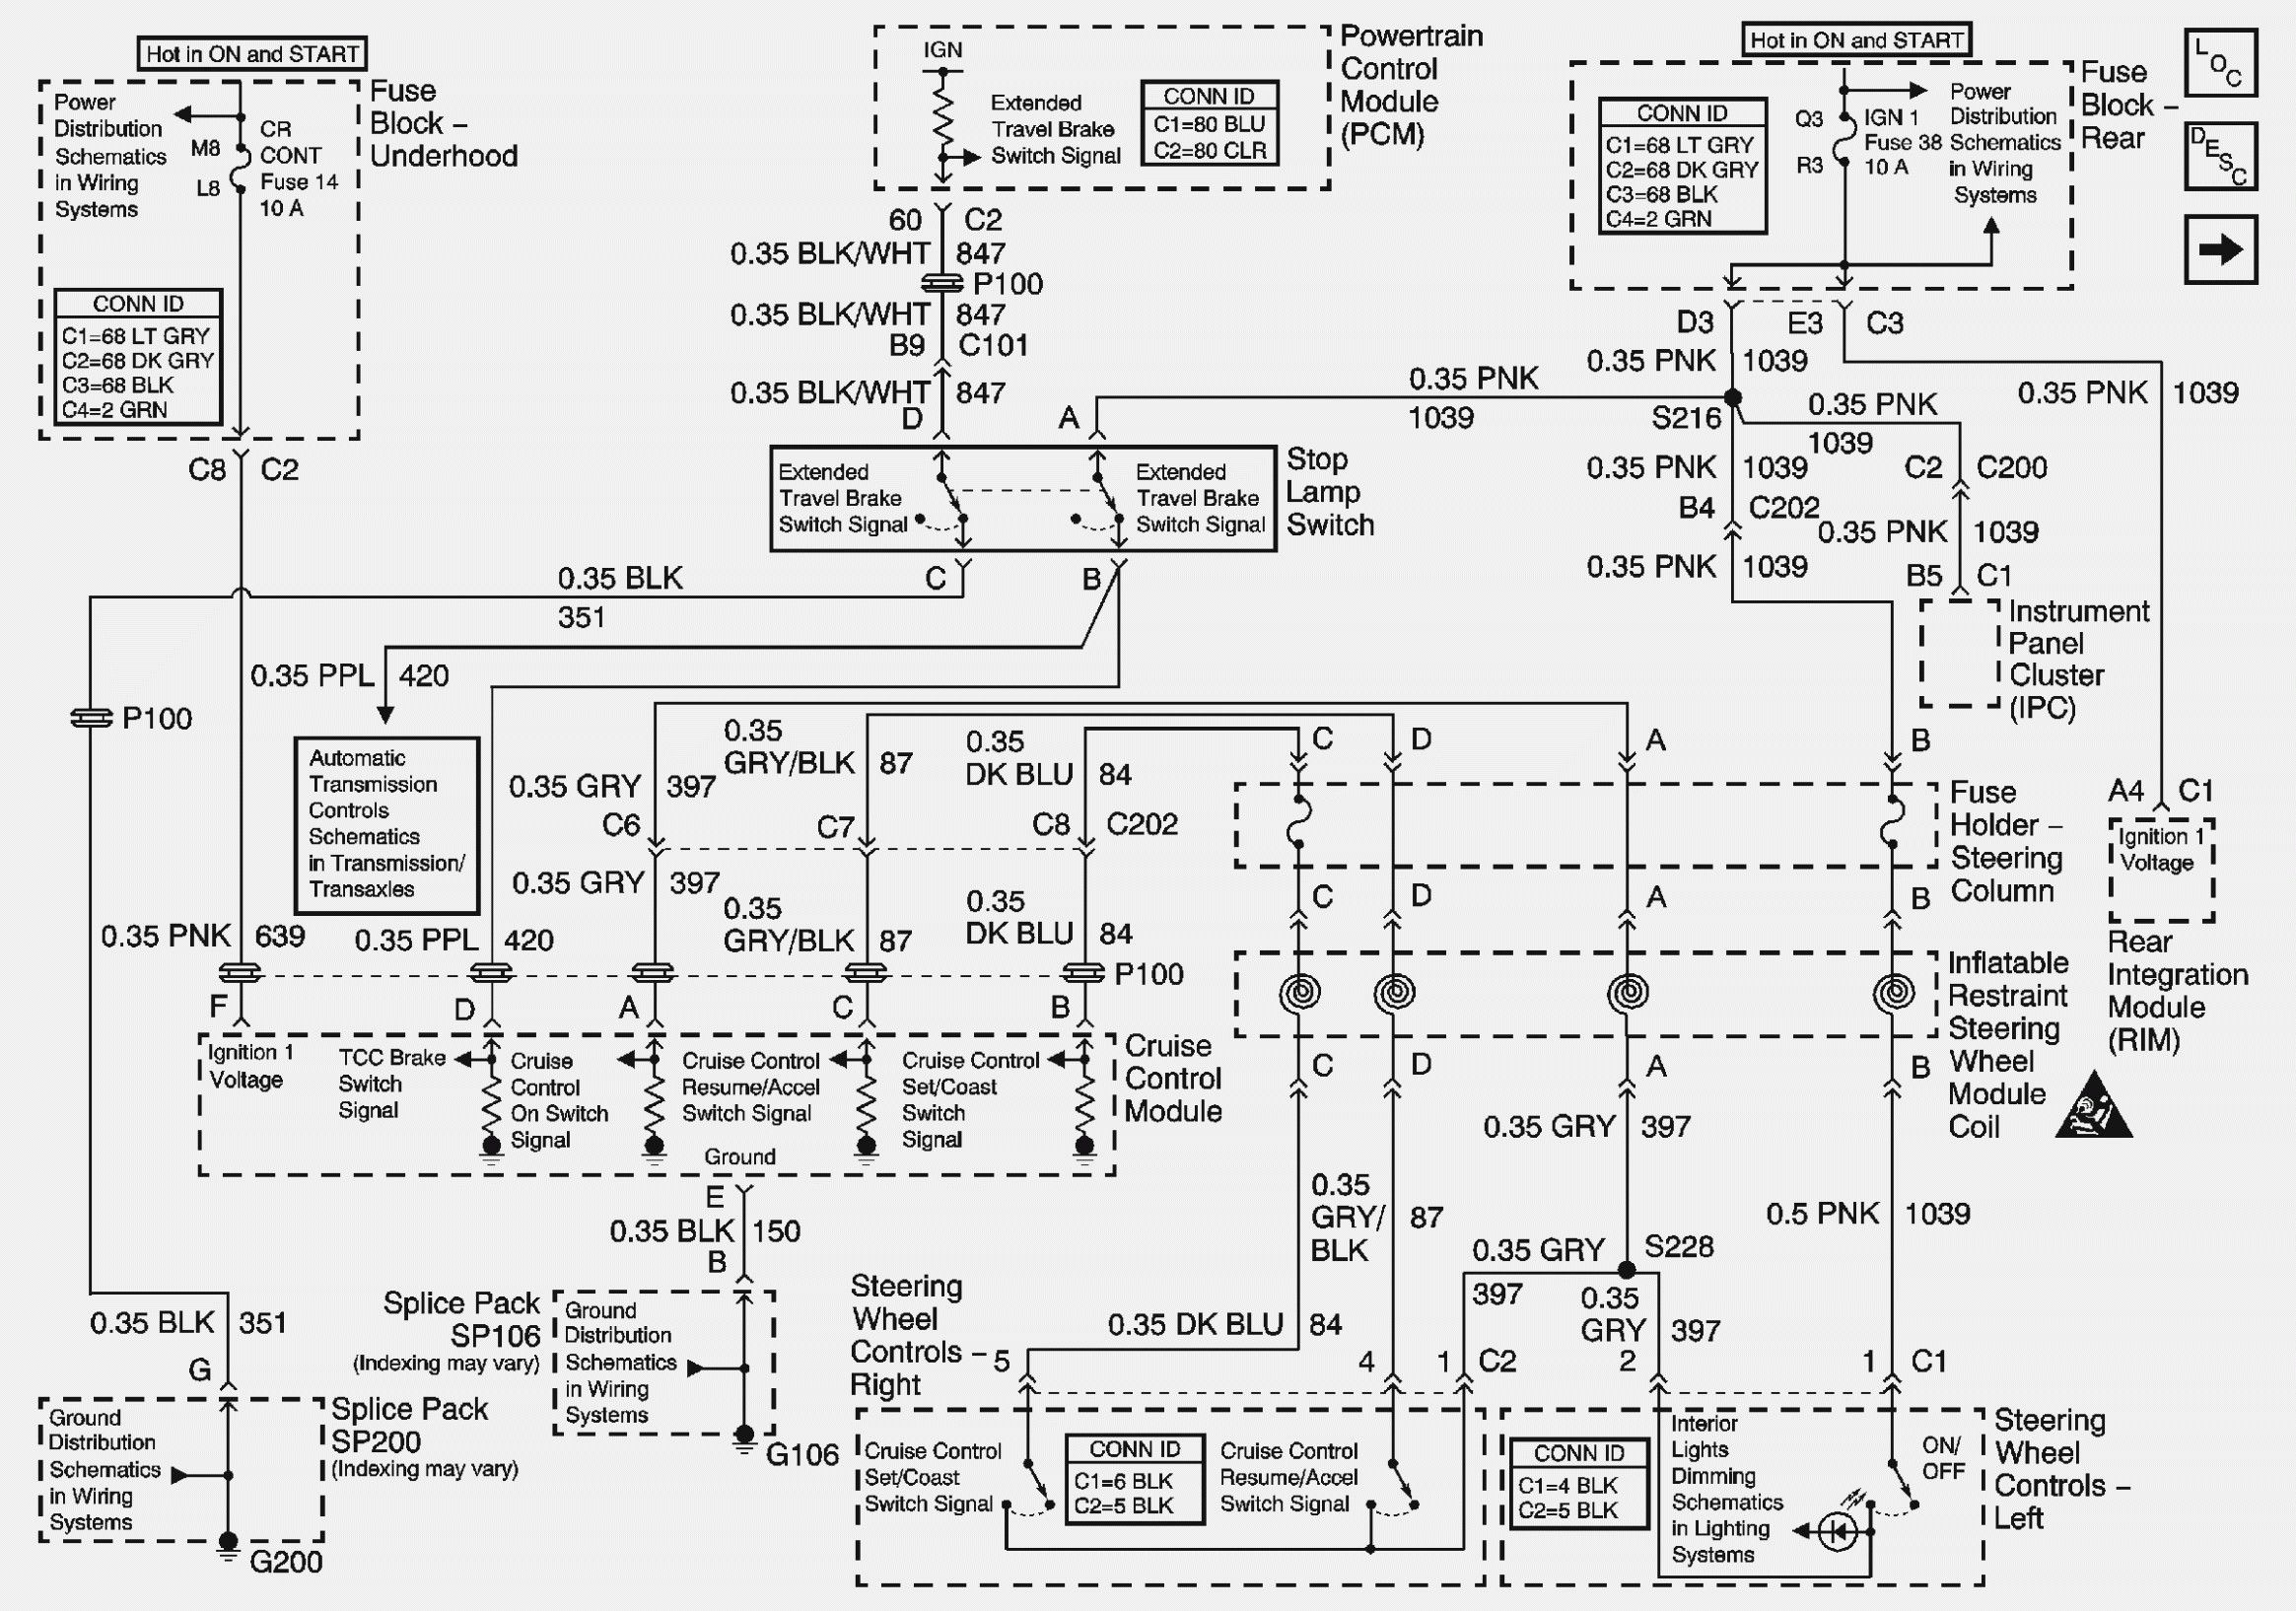 Audi A4 Wiring Diagram 1998 - Wiring Diagram Data brown-build -  brown-build.portorhoca.it | Audi A4 Stereo Wiring Diagram |  | portorhoca.it